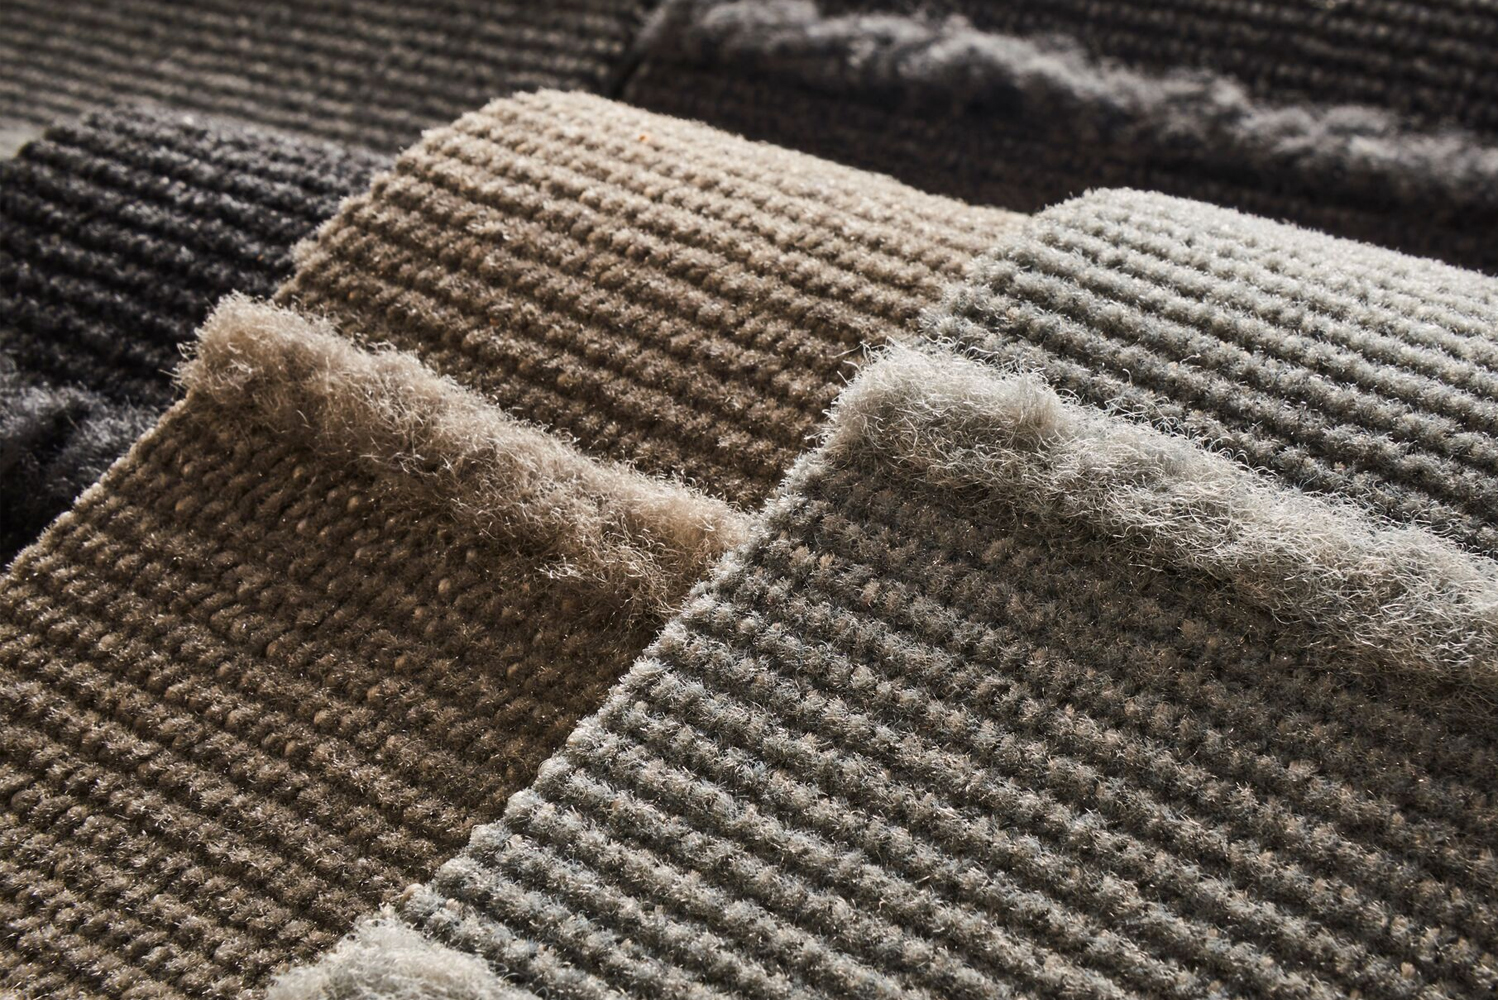 Made with solution-dyed yarn to conserve water, the entire collection is suited for workplace and hospitality environments.